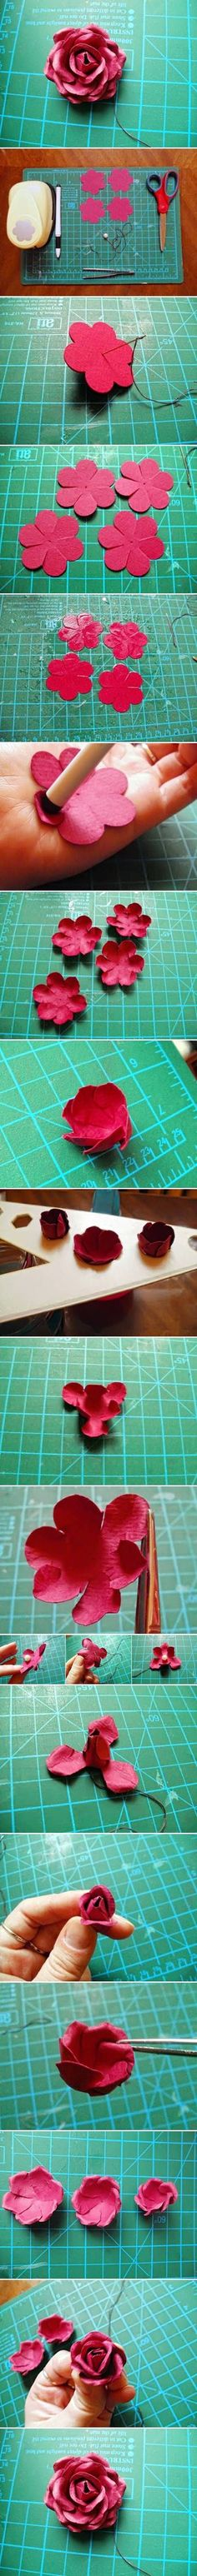 :) Here is the Inspirational Monday on diy flower series – DIY paper rose flower! This week is about making DIY paper rose flower . The step by step instruction is here… Felt Flowers, Diy Flowers, Fabric Flowers, Rose Tutorial, Paper Flower Tutorial, Diy Tutorial, Paper Ribbon, Pink Paper, Paper Flower Decor